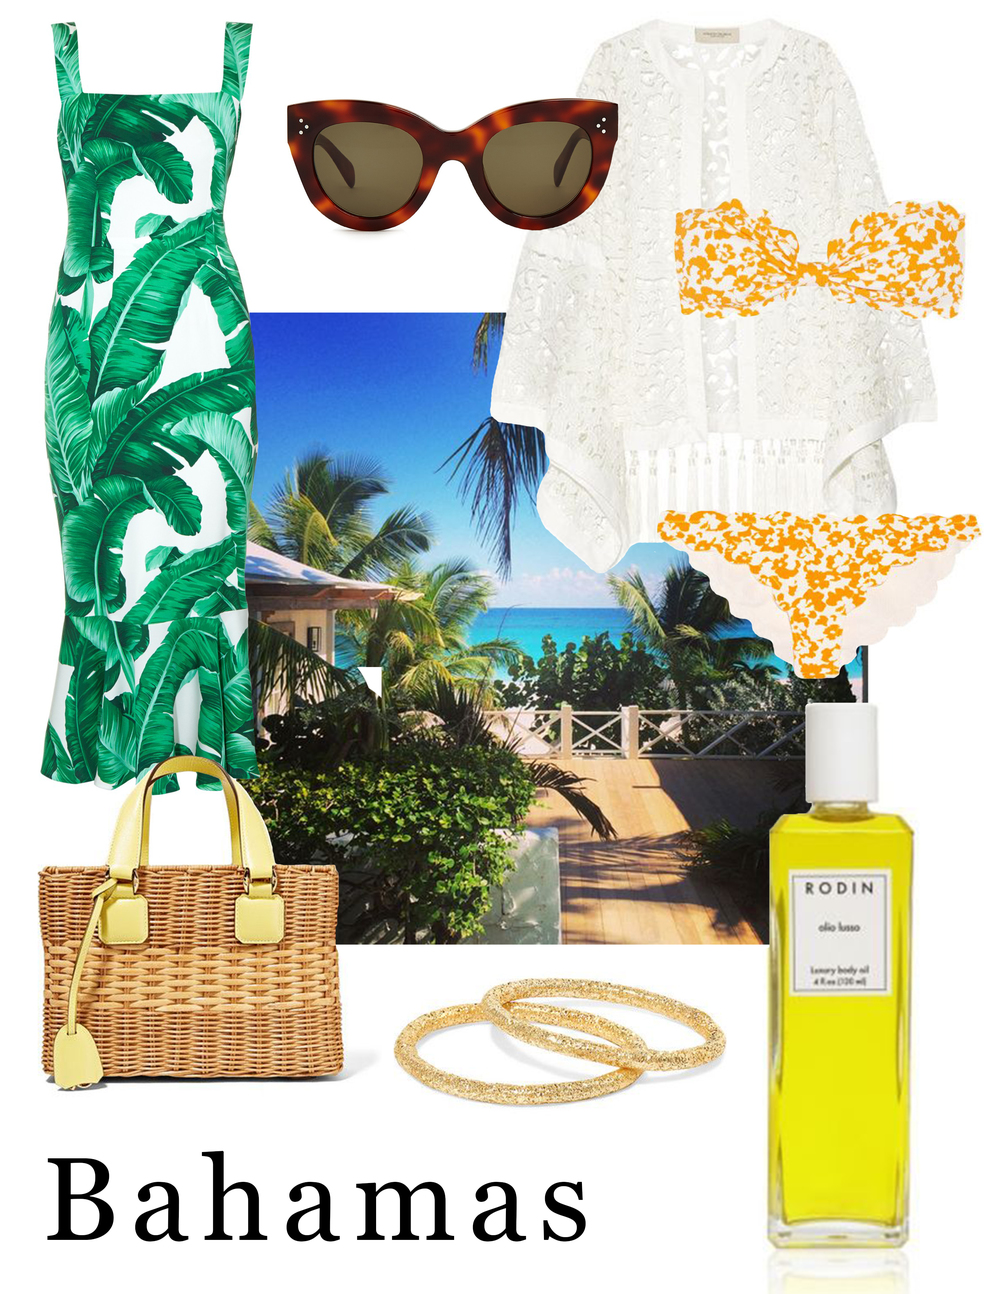 Packing inspiration: dark sunglasses to fend off the Atlantic sun (Celine); a palm-leaf-print dress (Dolce & Gabbana); carefree hammered gold rings (Carolina Bucci); a classic white coverup (Adriana Degreas); a vibrant swimsuit (Marysia); a classic wicker bag (Mark Cross); nourishing body oil (Rodin).